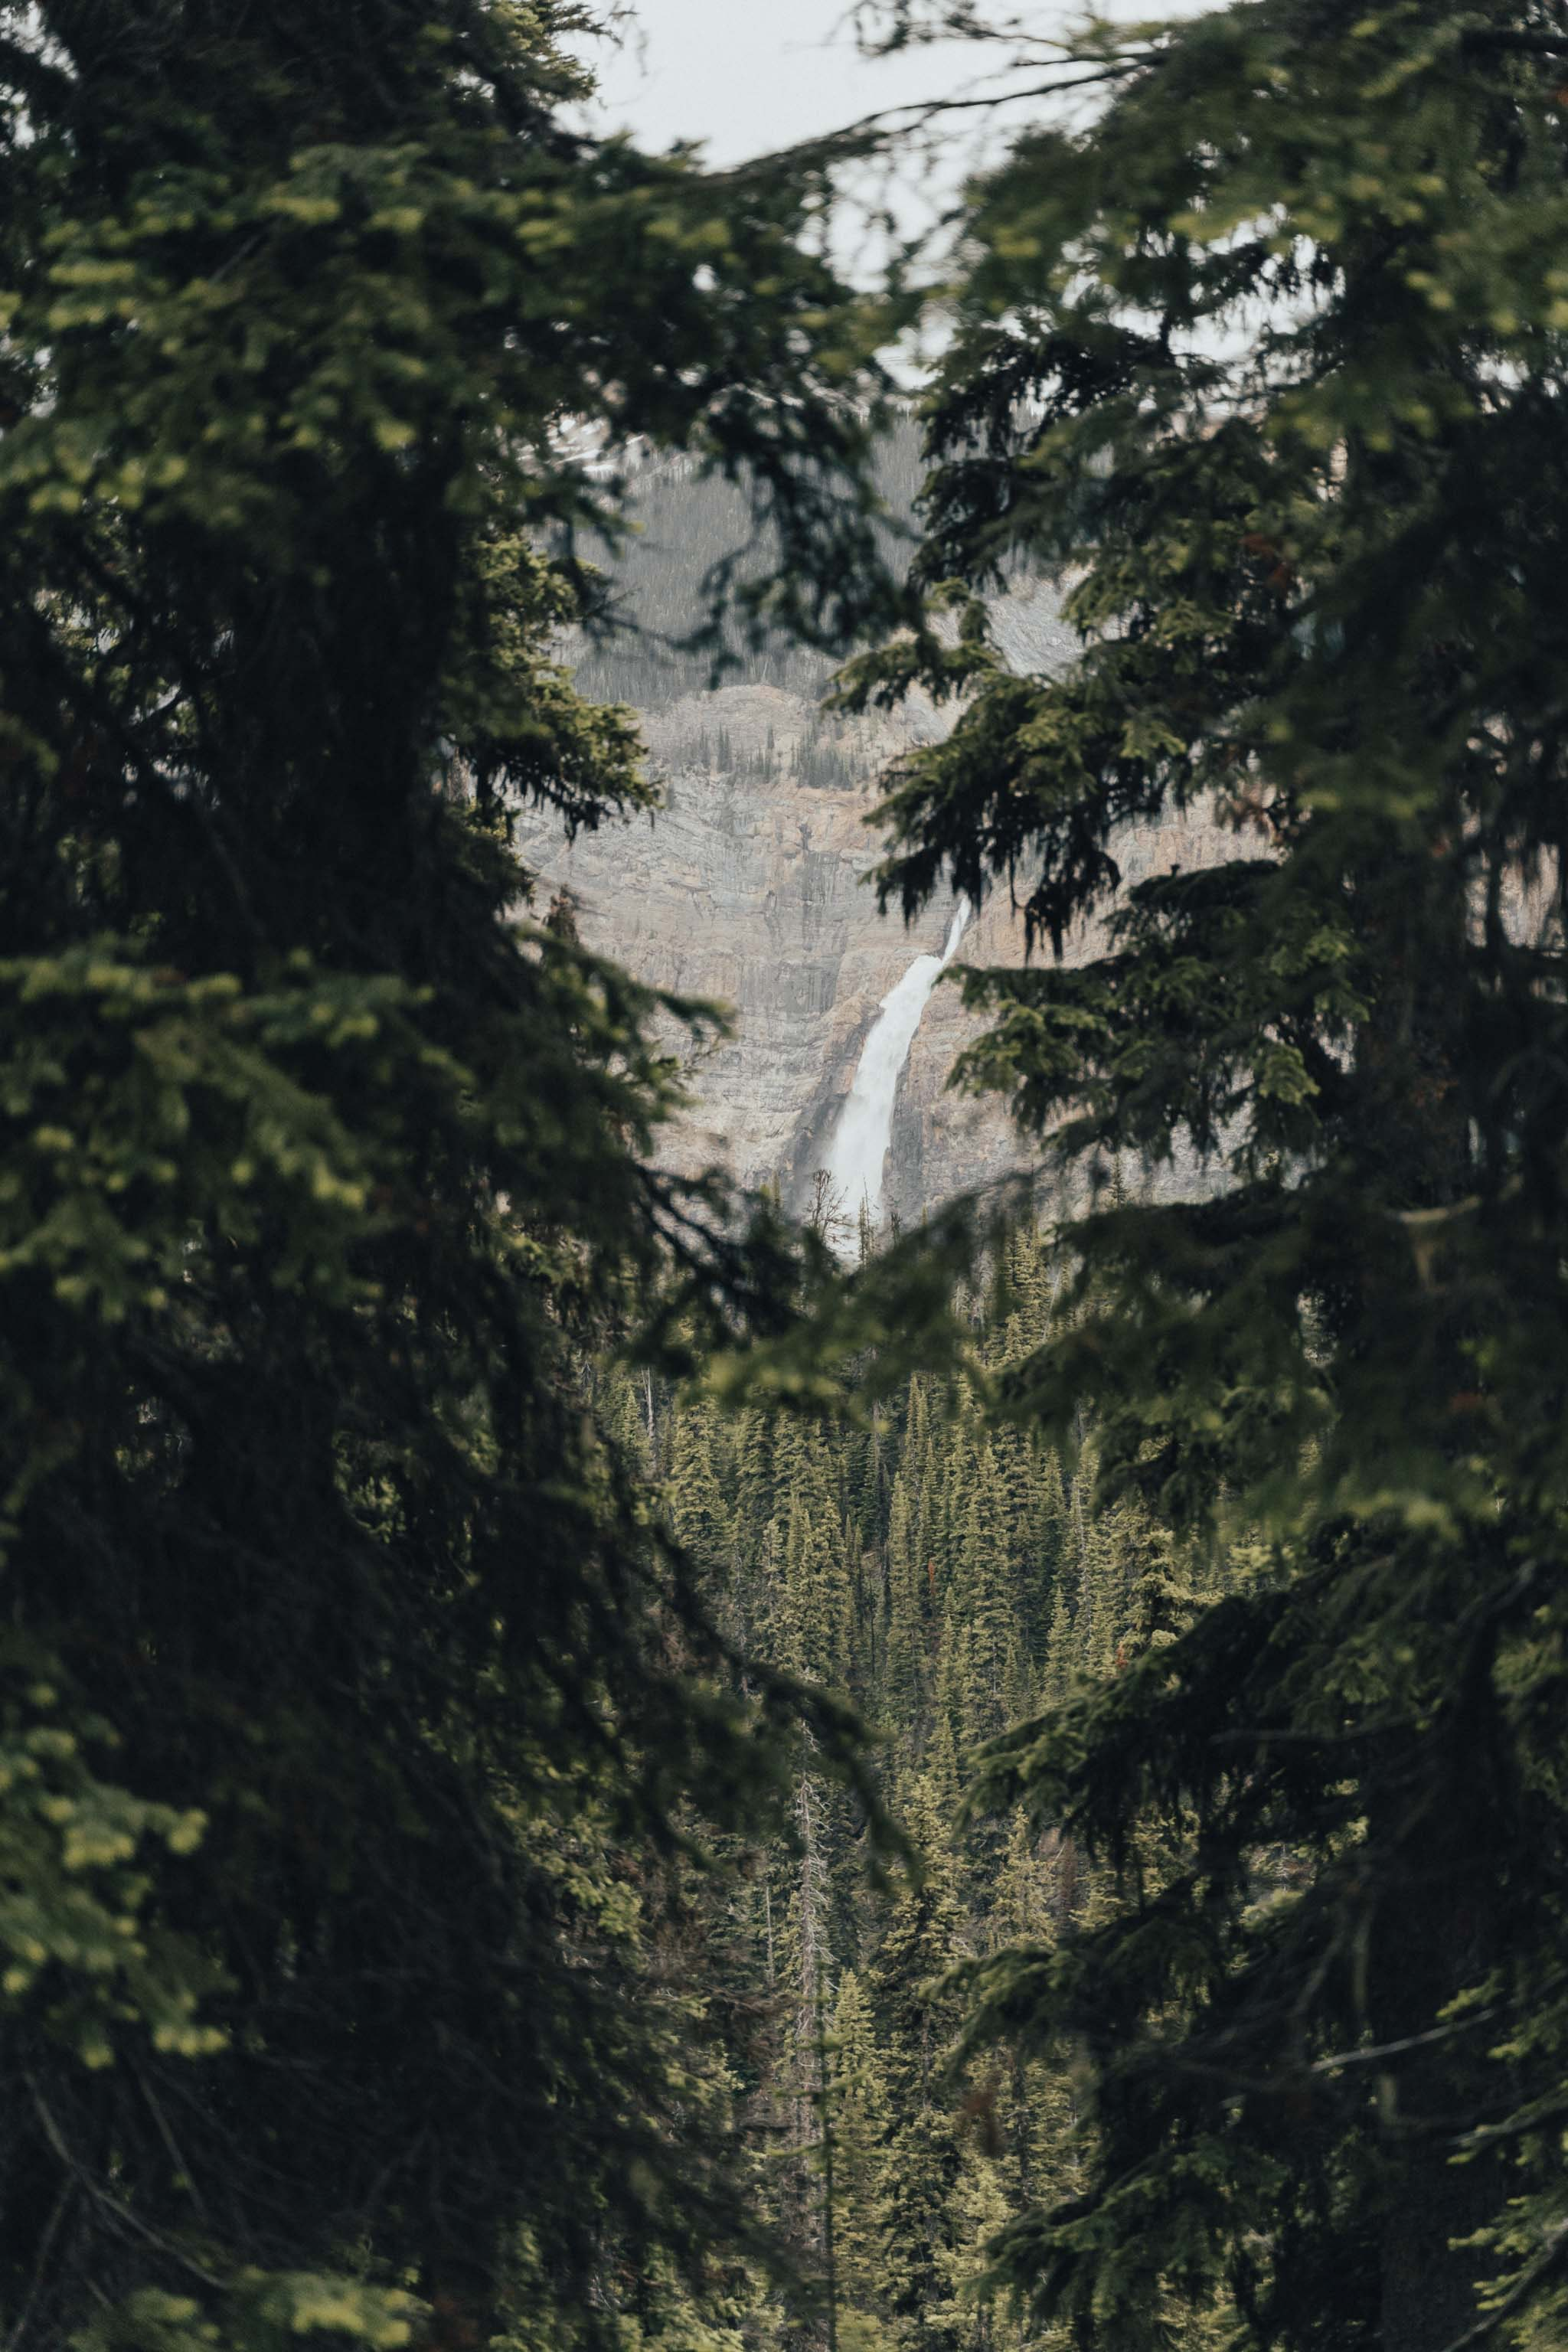 156706 download wallpaper Nature, Waterfall, Branches, Spruce, Fir, Rocks, Trees screensavers and pictures for free